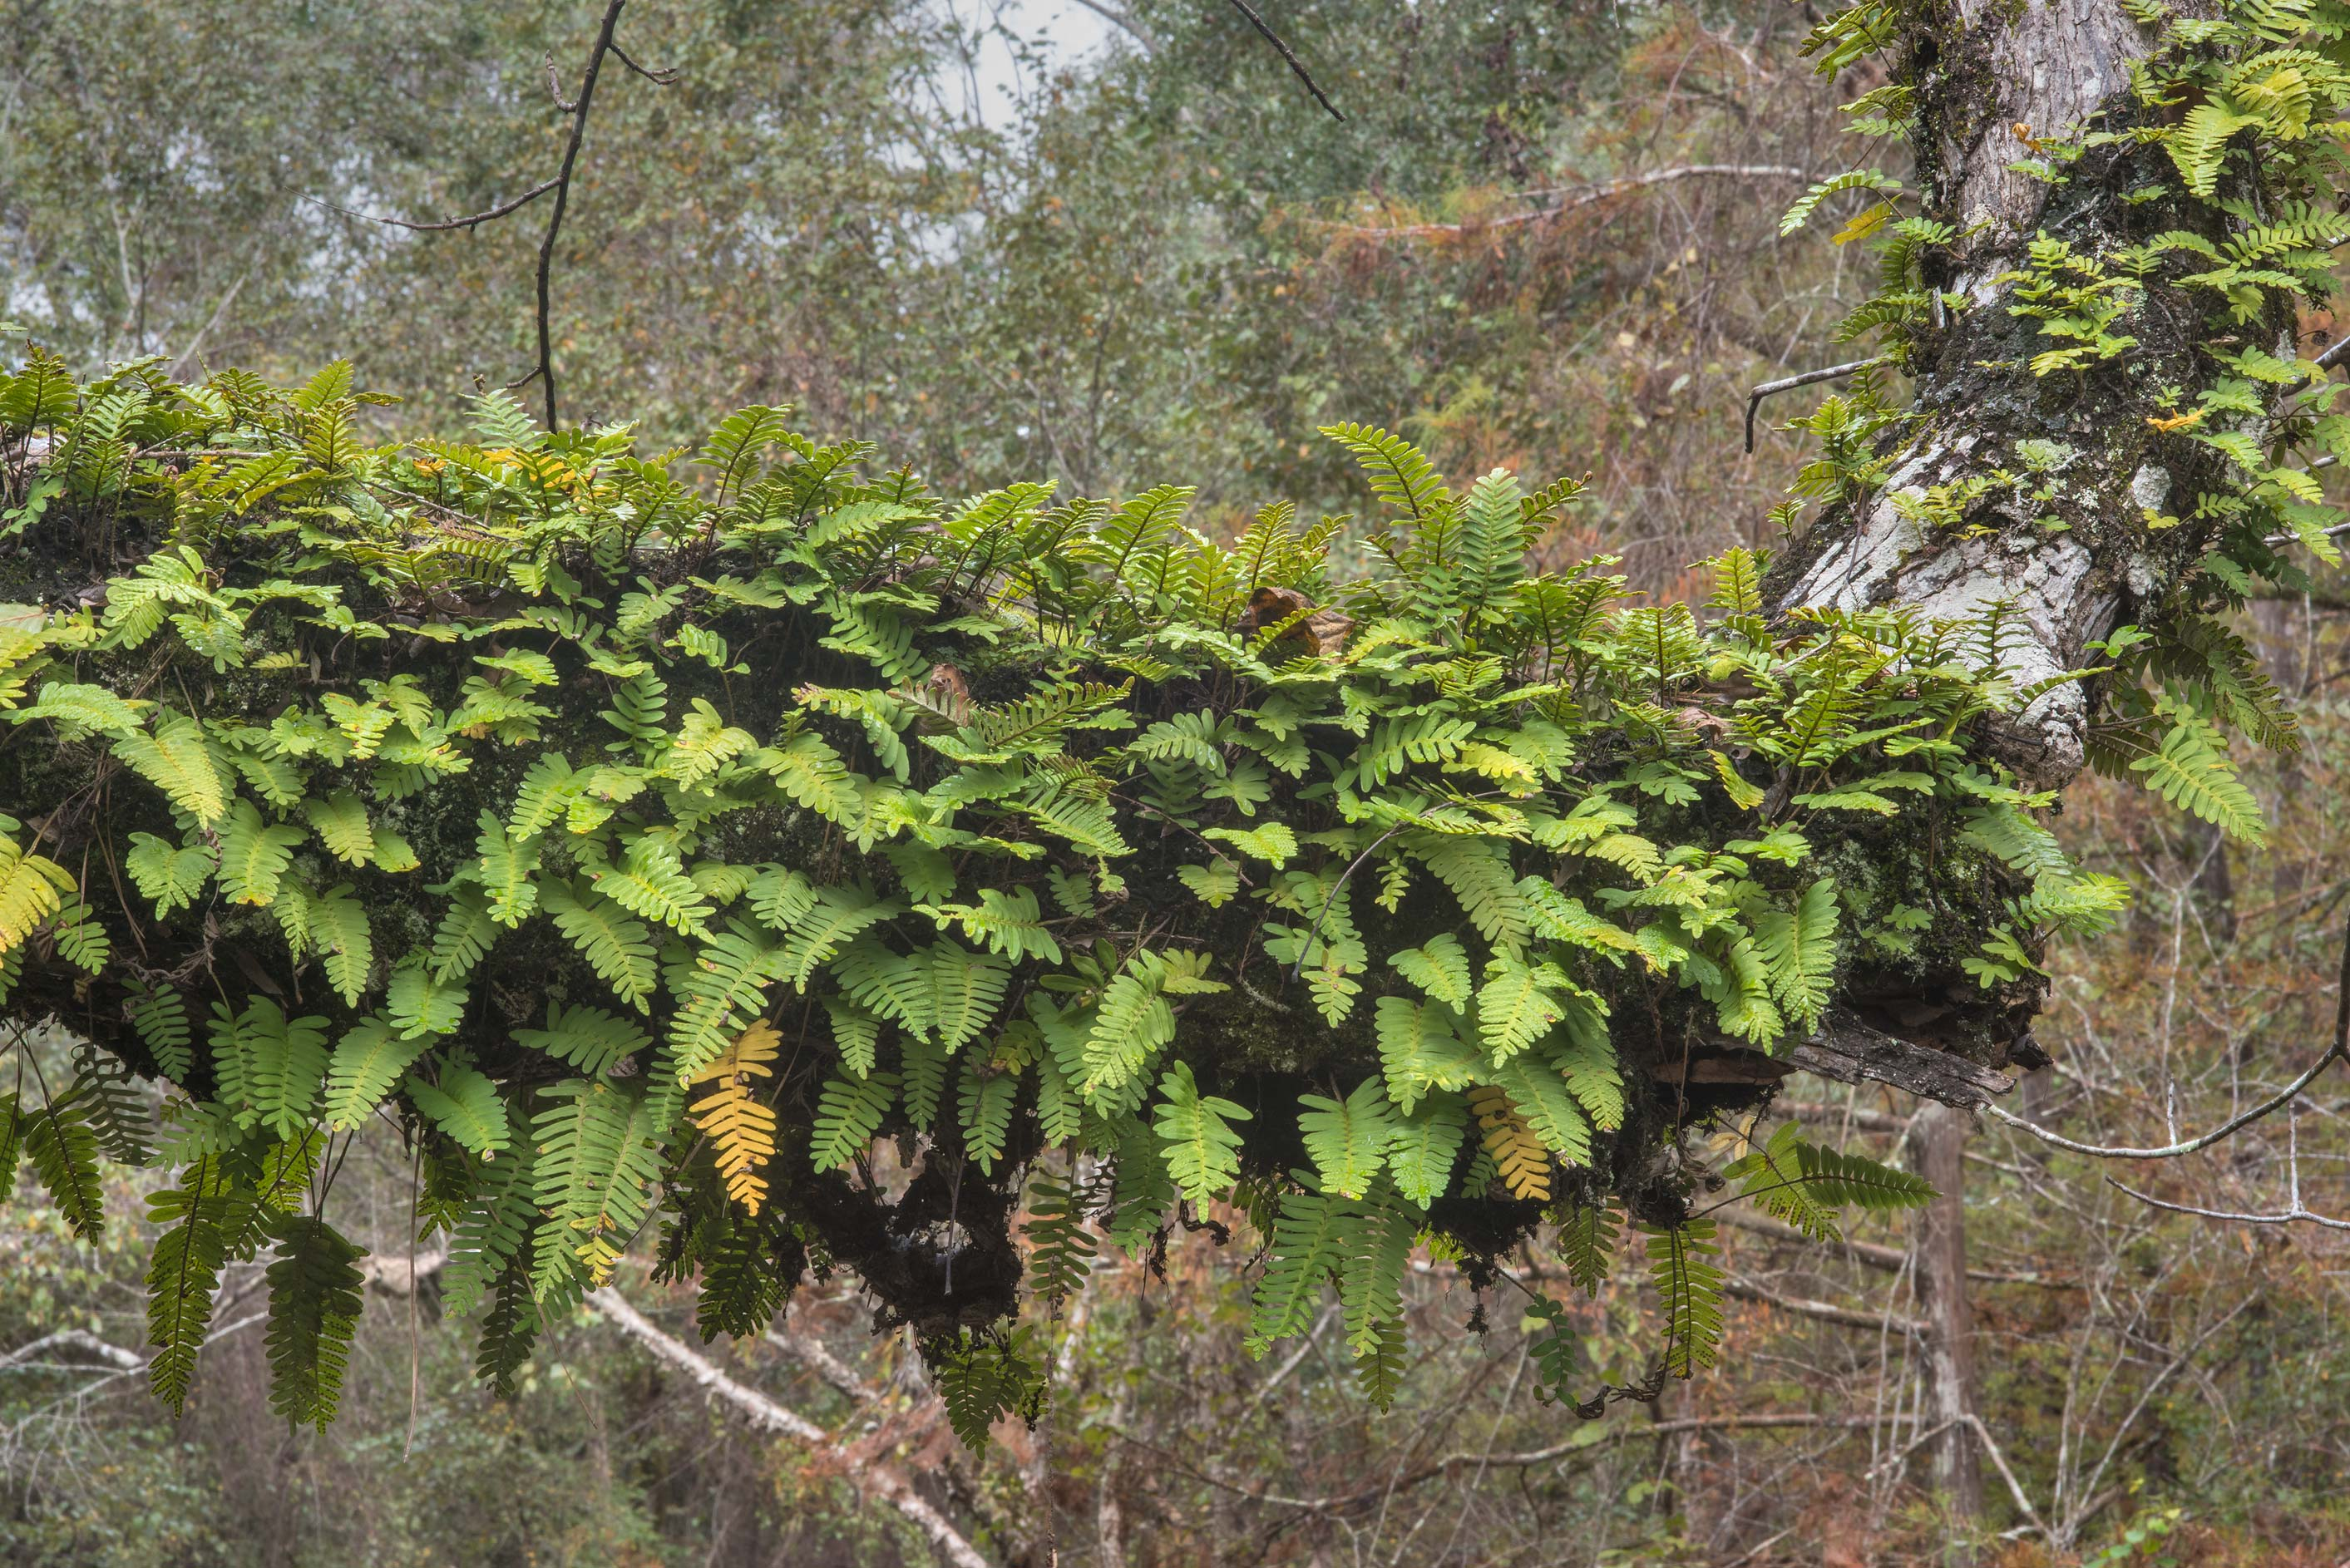 Resurrection fern (Pleopeltis polypodioides) on...National Preserve. Warren, Texas